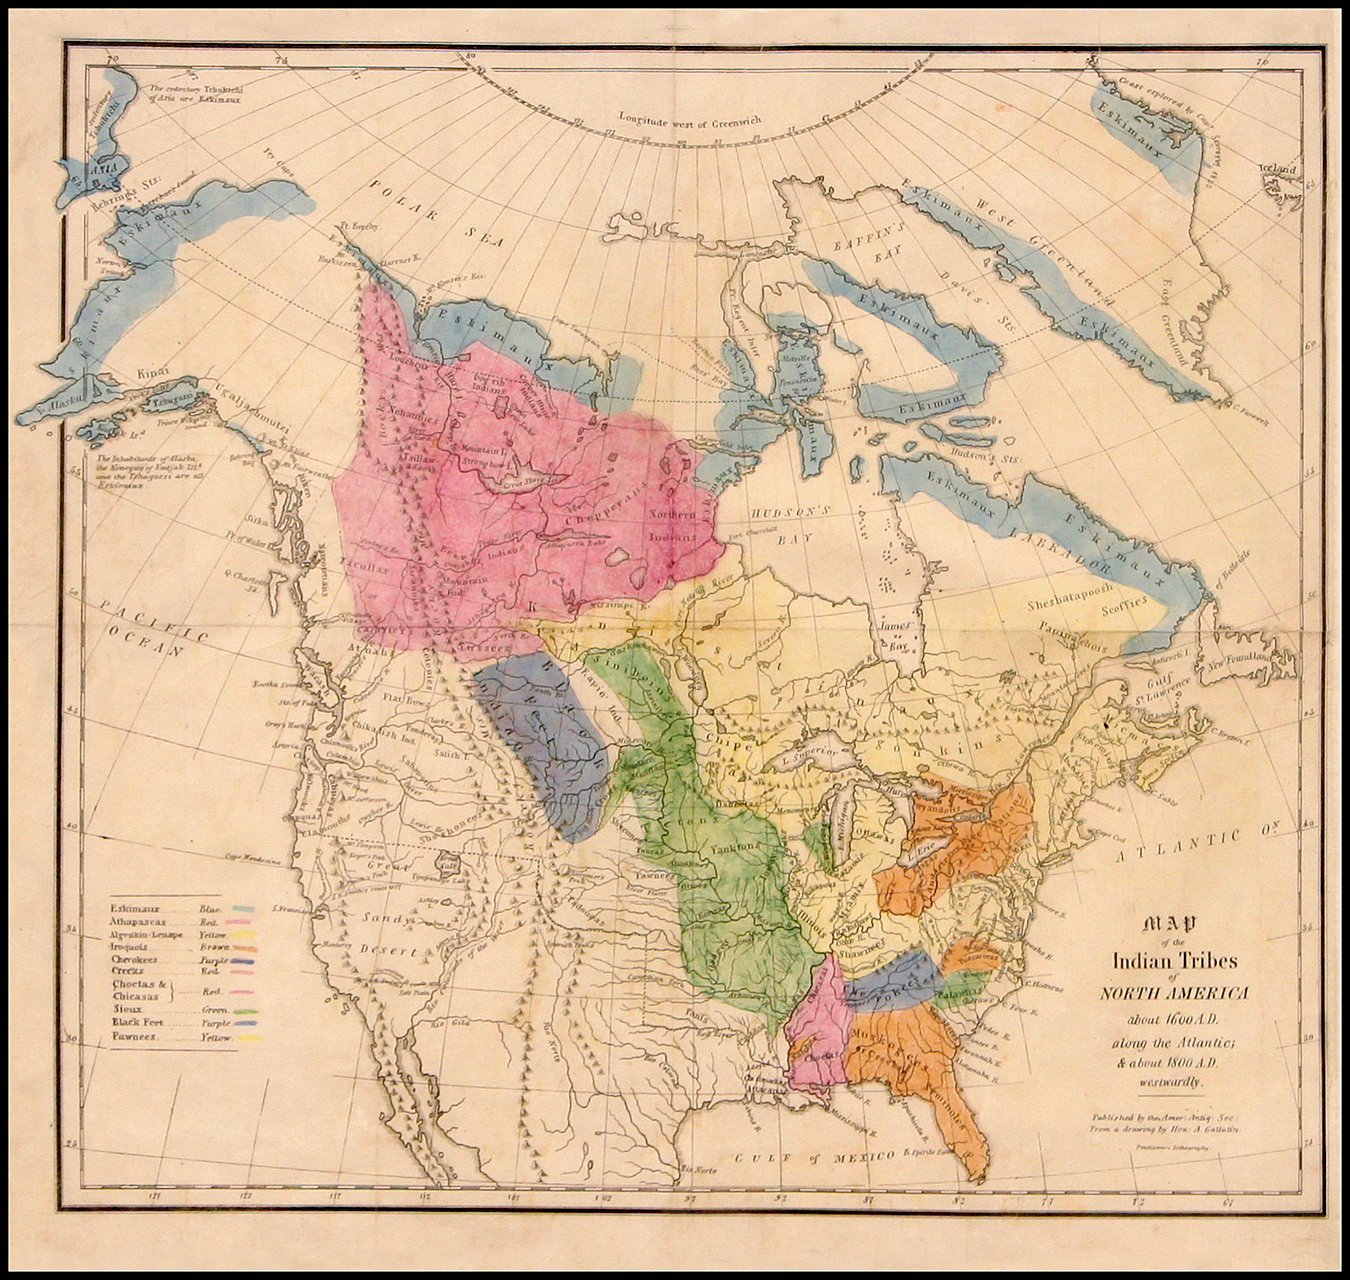 Map of the Indian Tribes of North America about 1600 A.D. along the ...